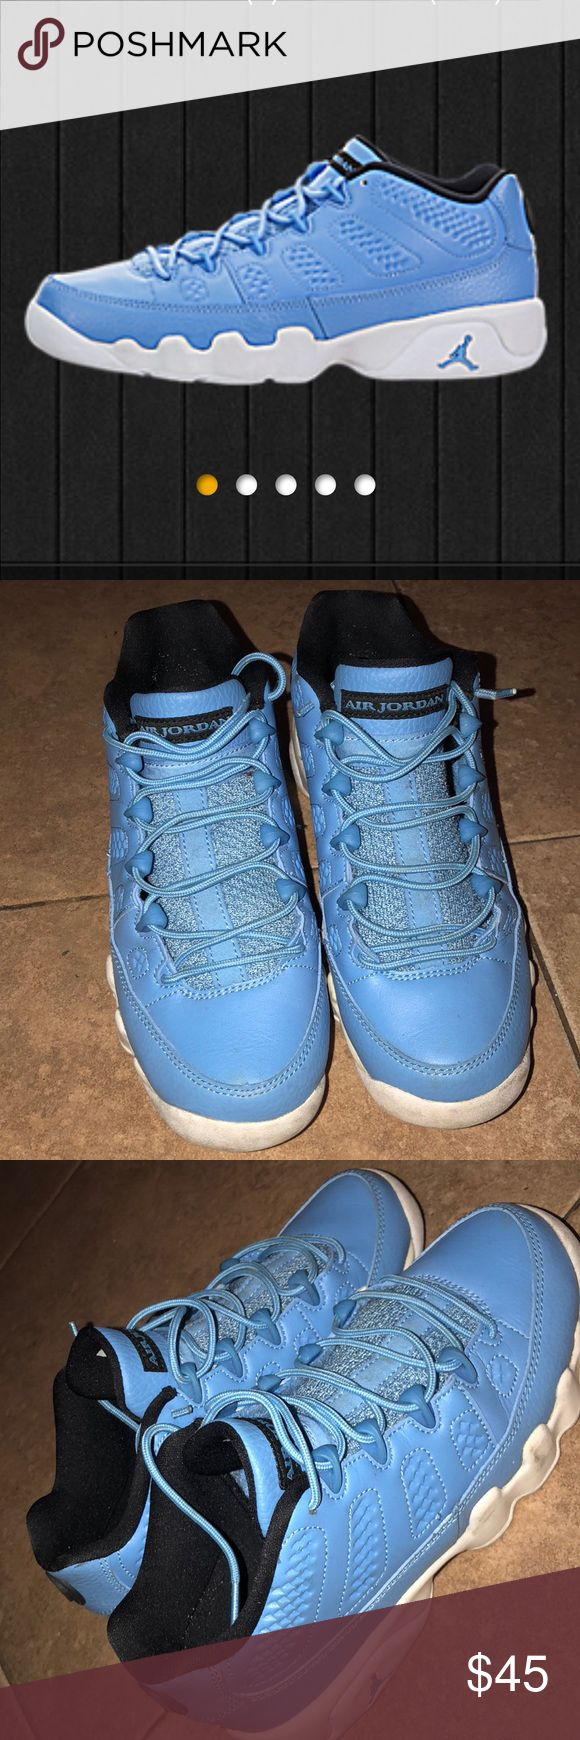 Low Top Pantone 9s. Pantone 9s collection. No box! Size 5 in men and size 6.5 women. Jordan Shoes Sneakers